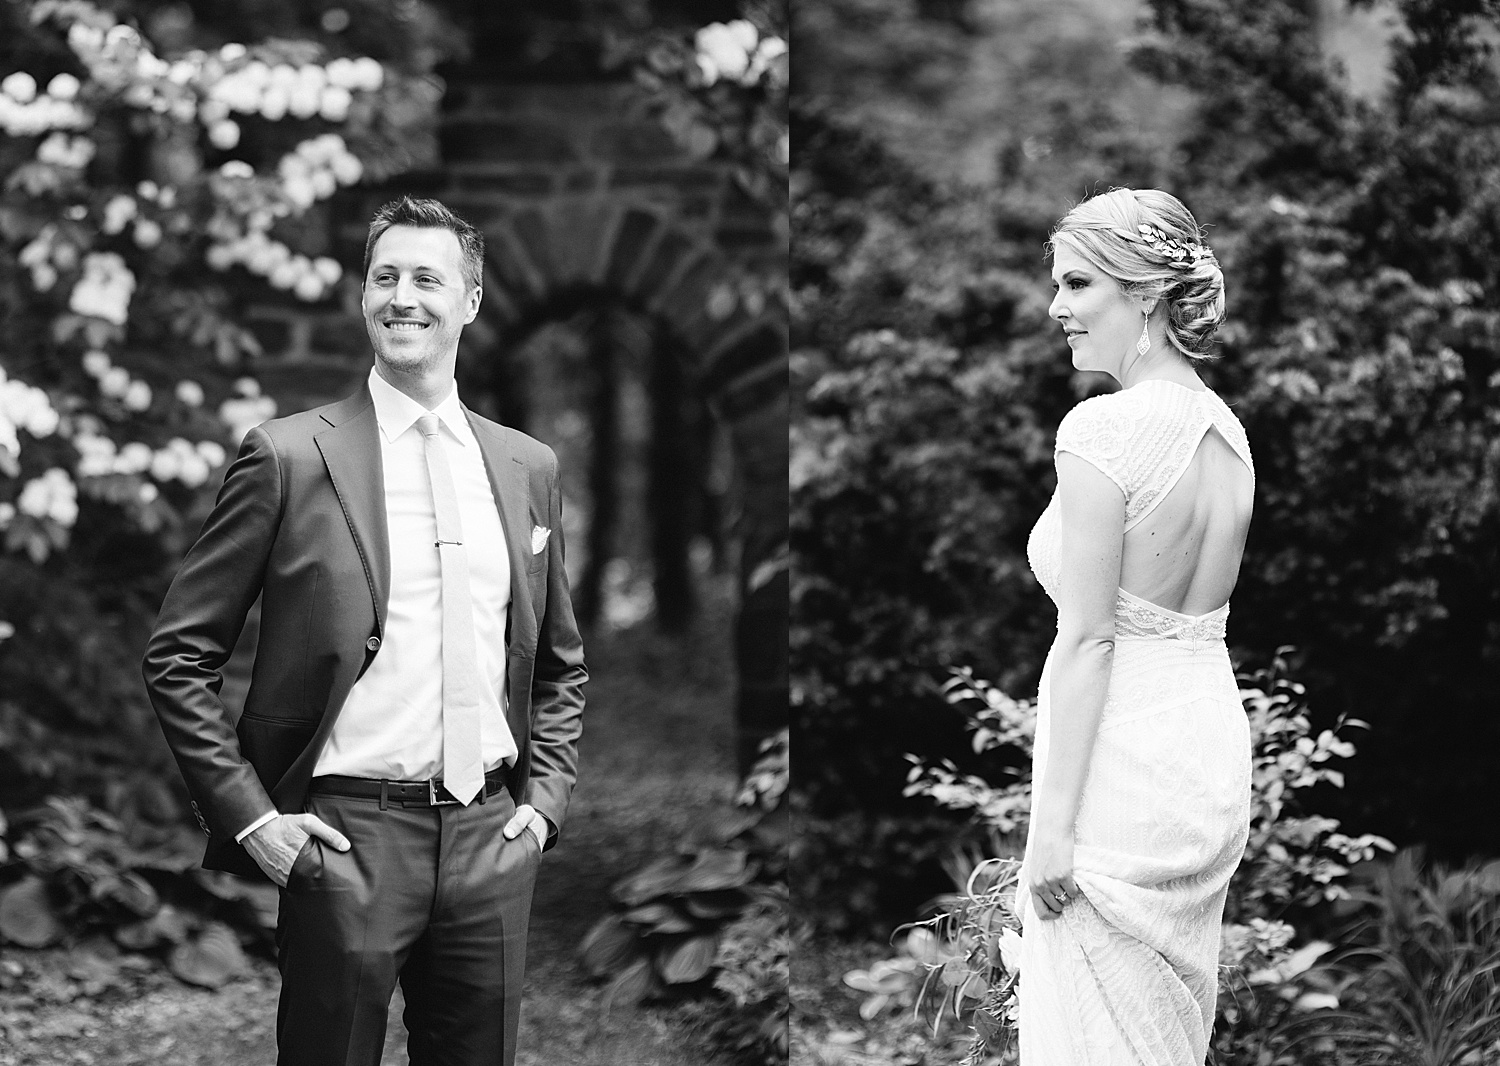 chelseachris_duke_art_gallery_wedding_image_045.jpg